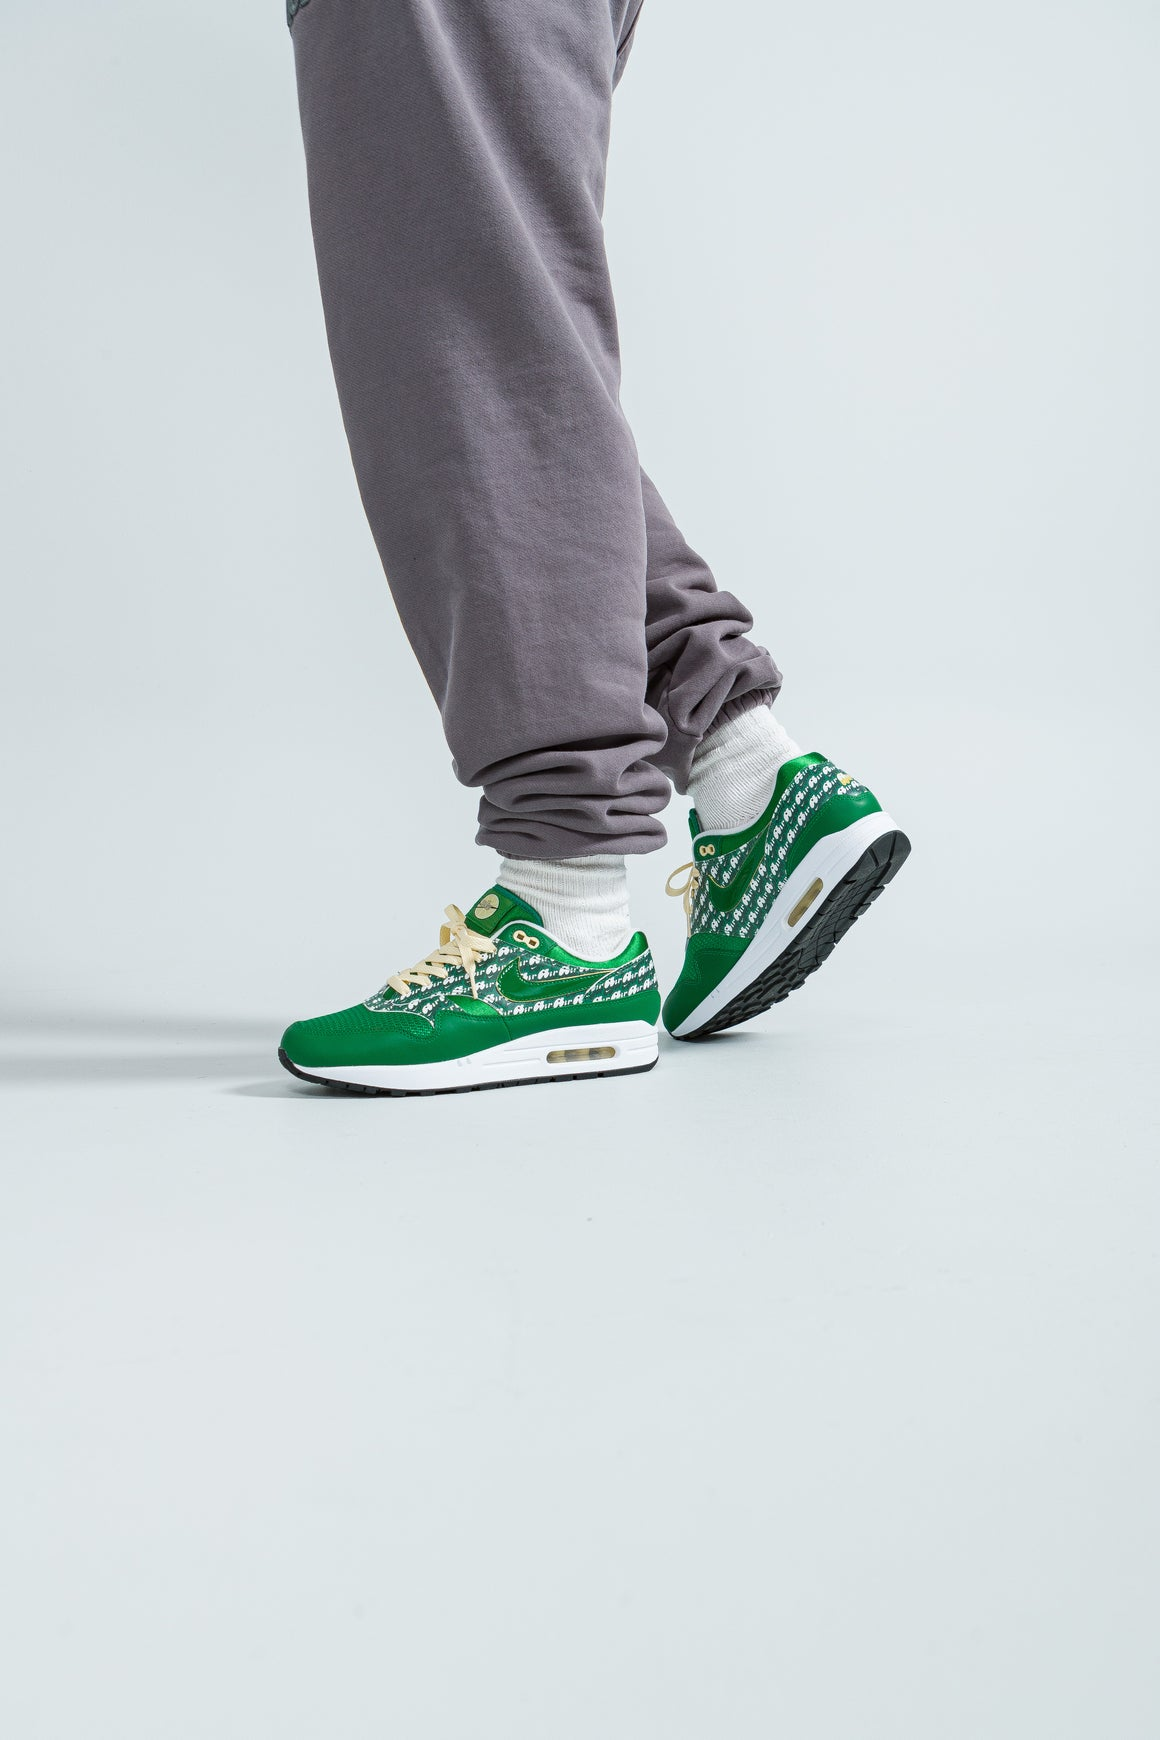 Nike - Air Max 1 Premium - Pine Green/Pine Green-True White - Up There